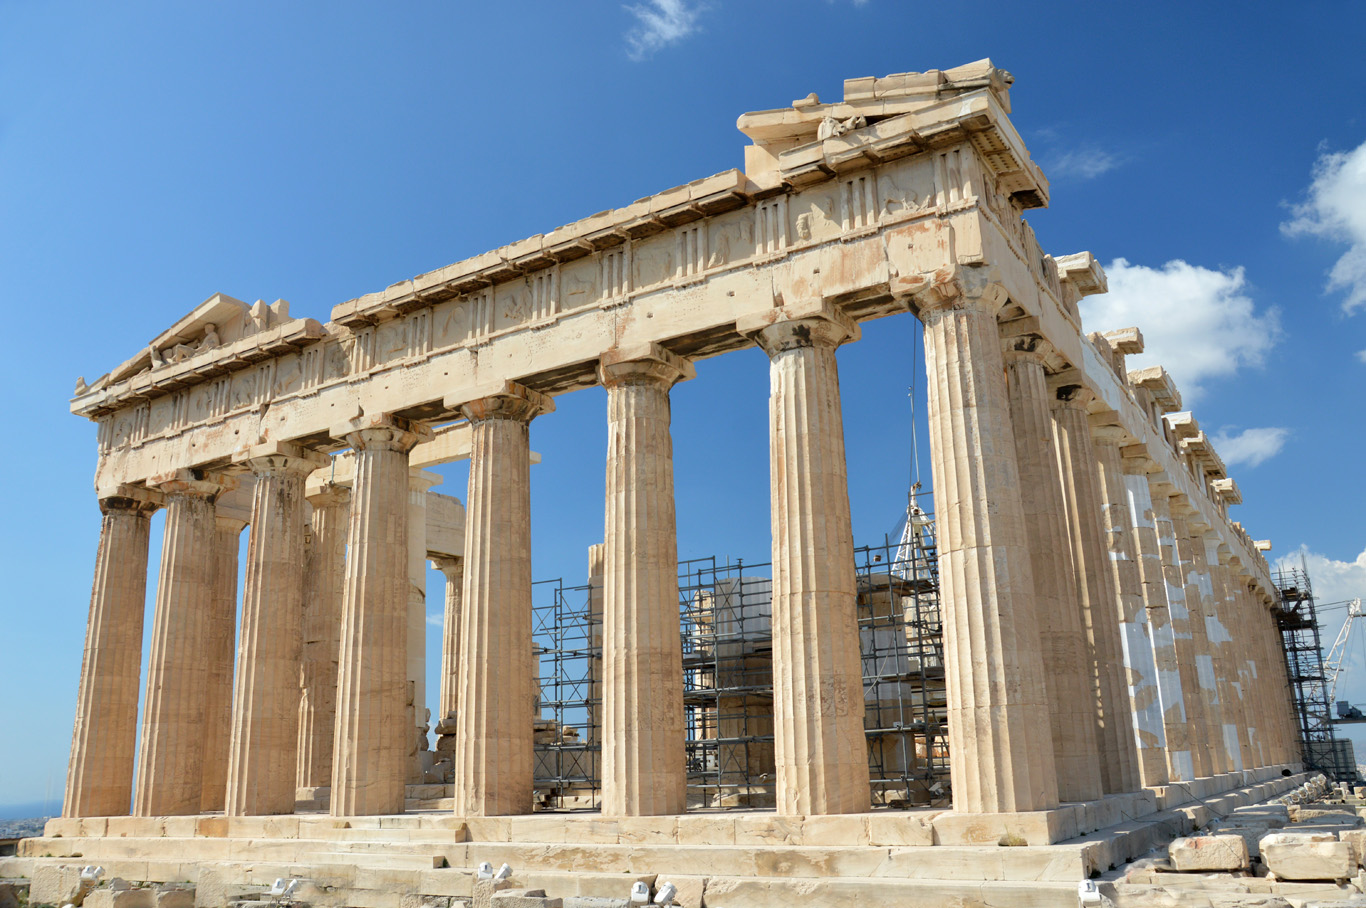 The Parthenon under renovation